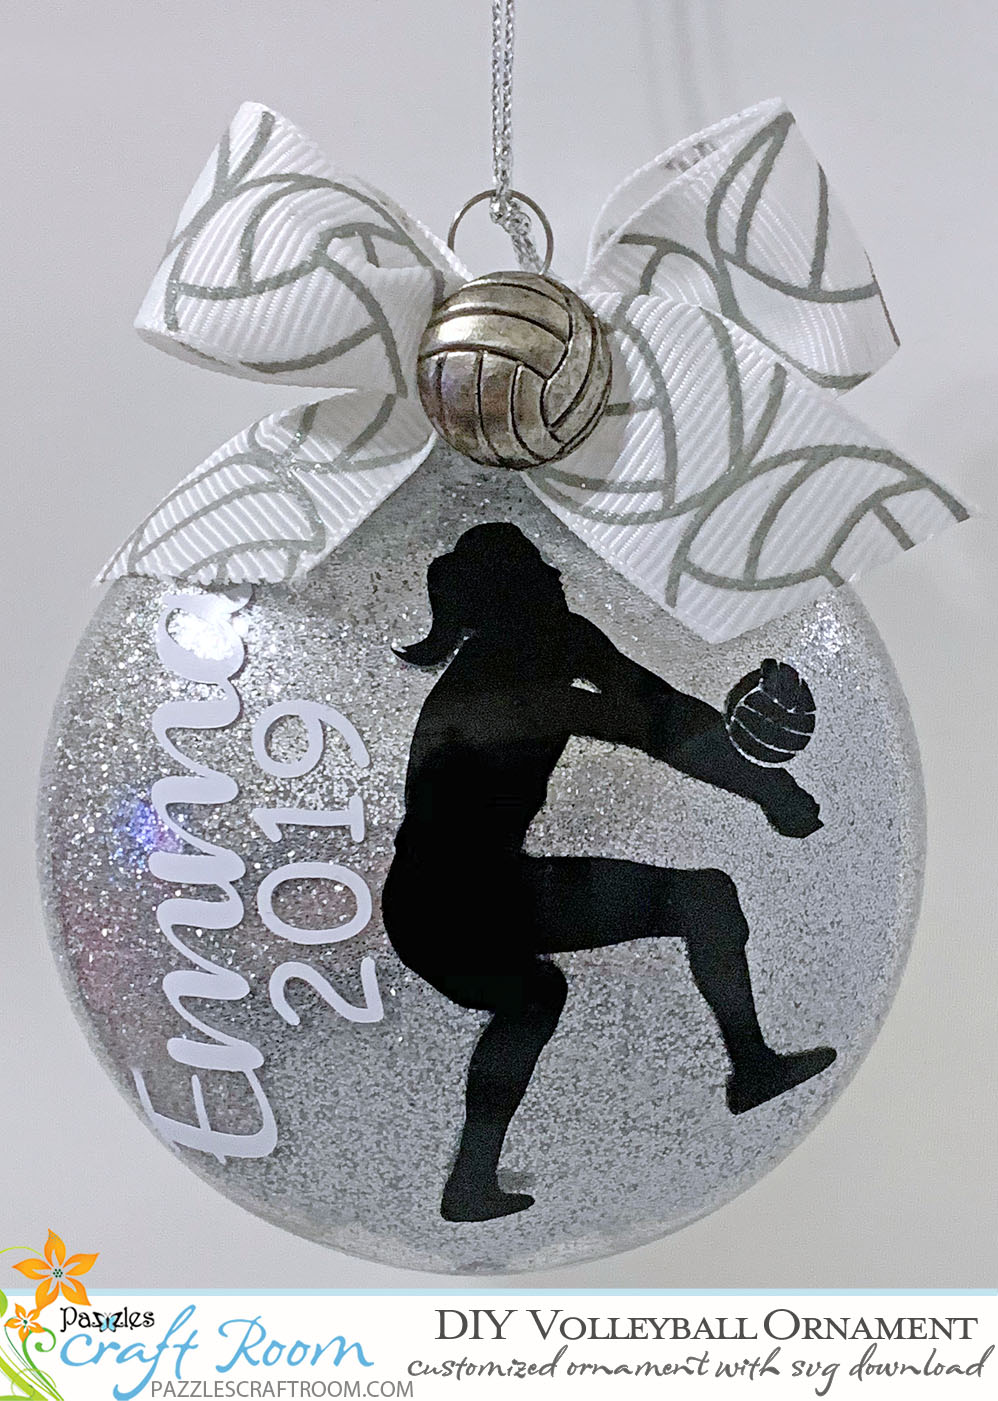 Pazzles Vinyl DIY Custom Volleyball Ornament with instant SVG download. Compatible with all major electronic cutters including Pazzles Inspiration, Cricut, and Silhouette Cameo. Design by Leslie Reyna.